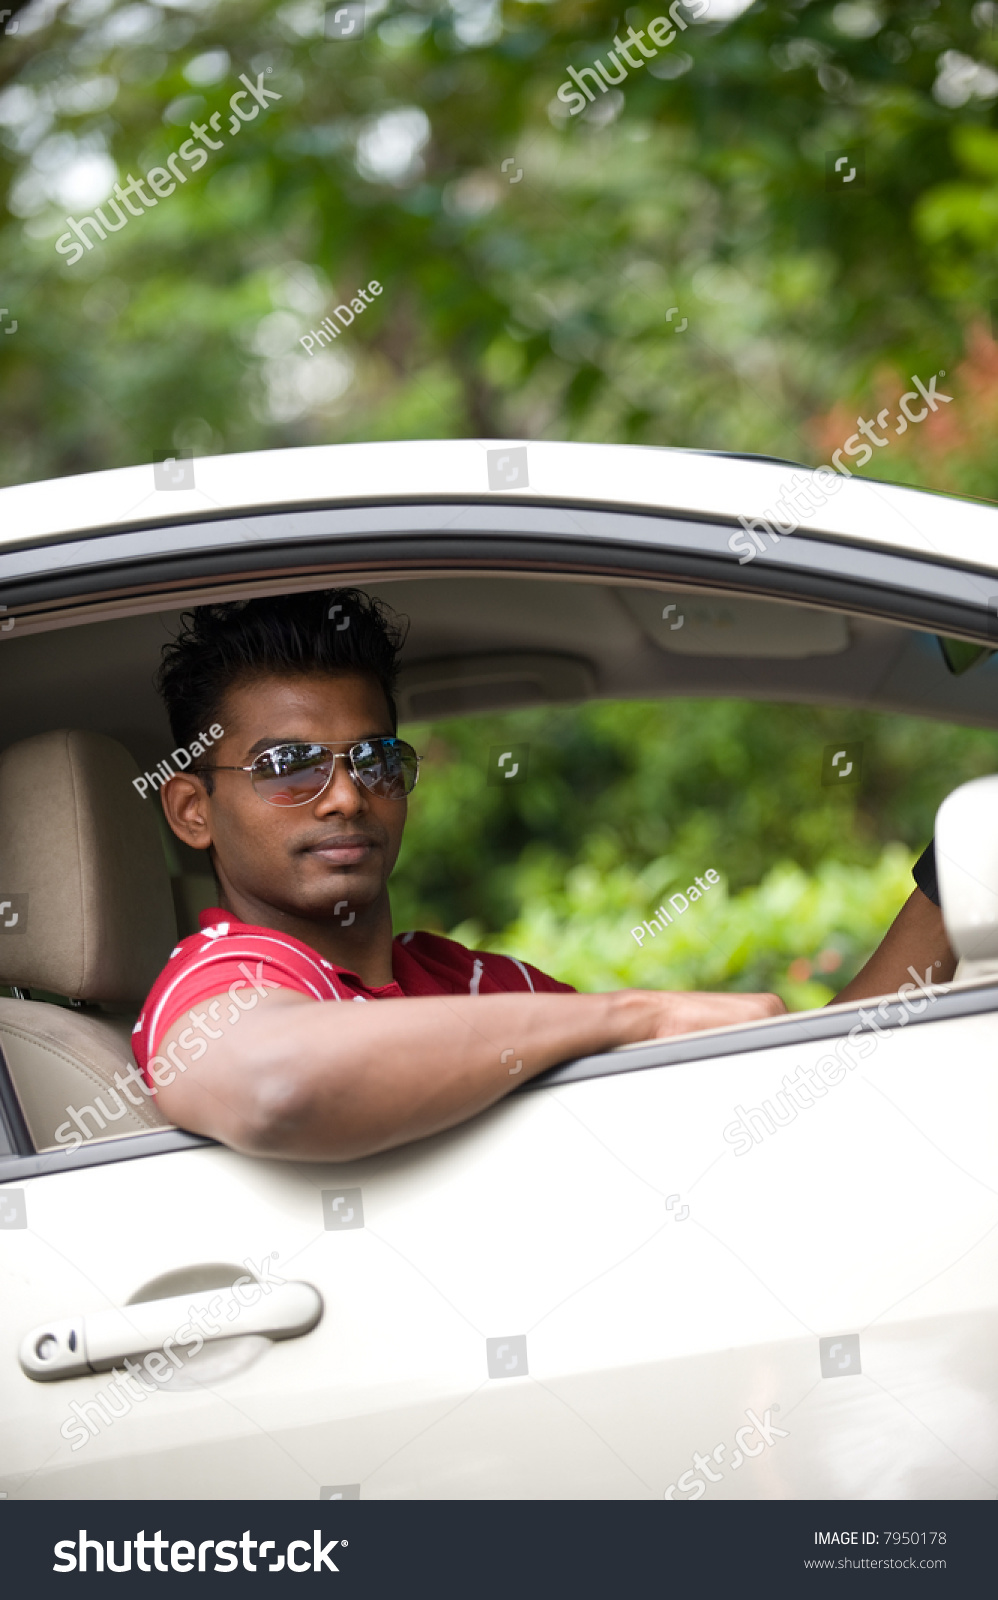 A Good-Looking Indian Man In Sunglasses Sitting In Drivers